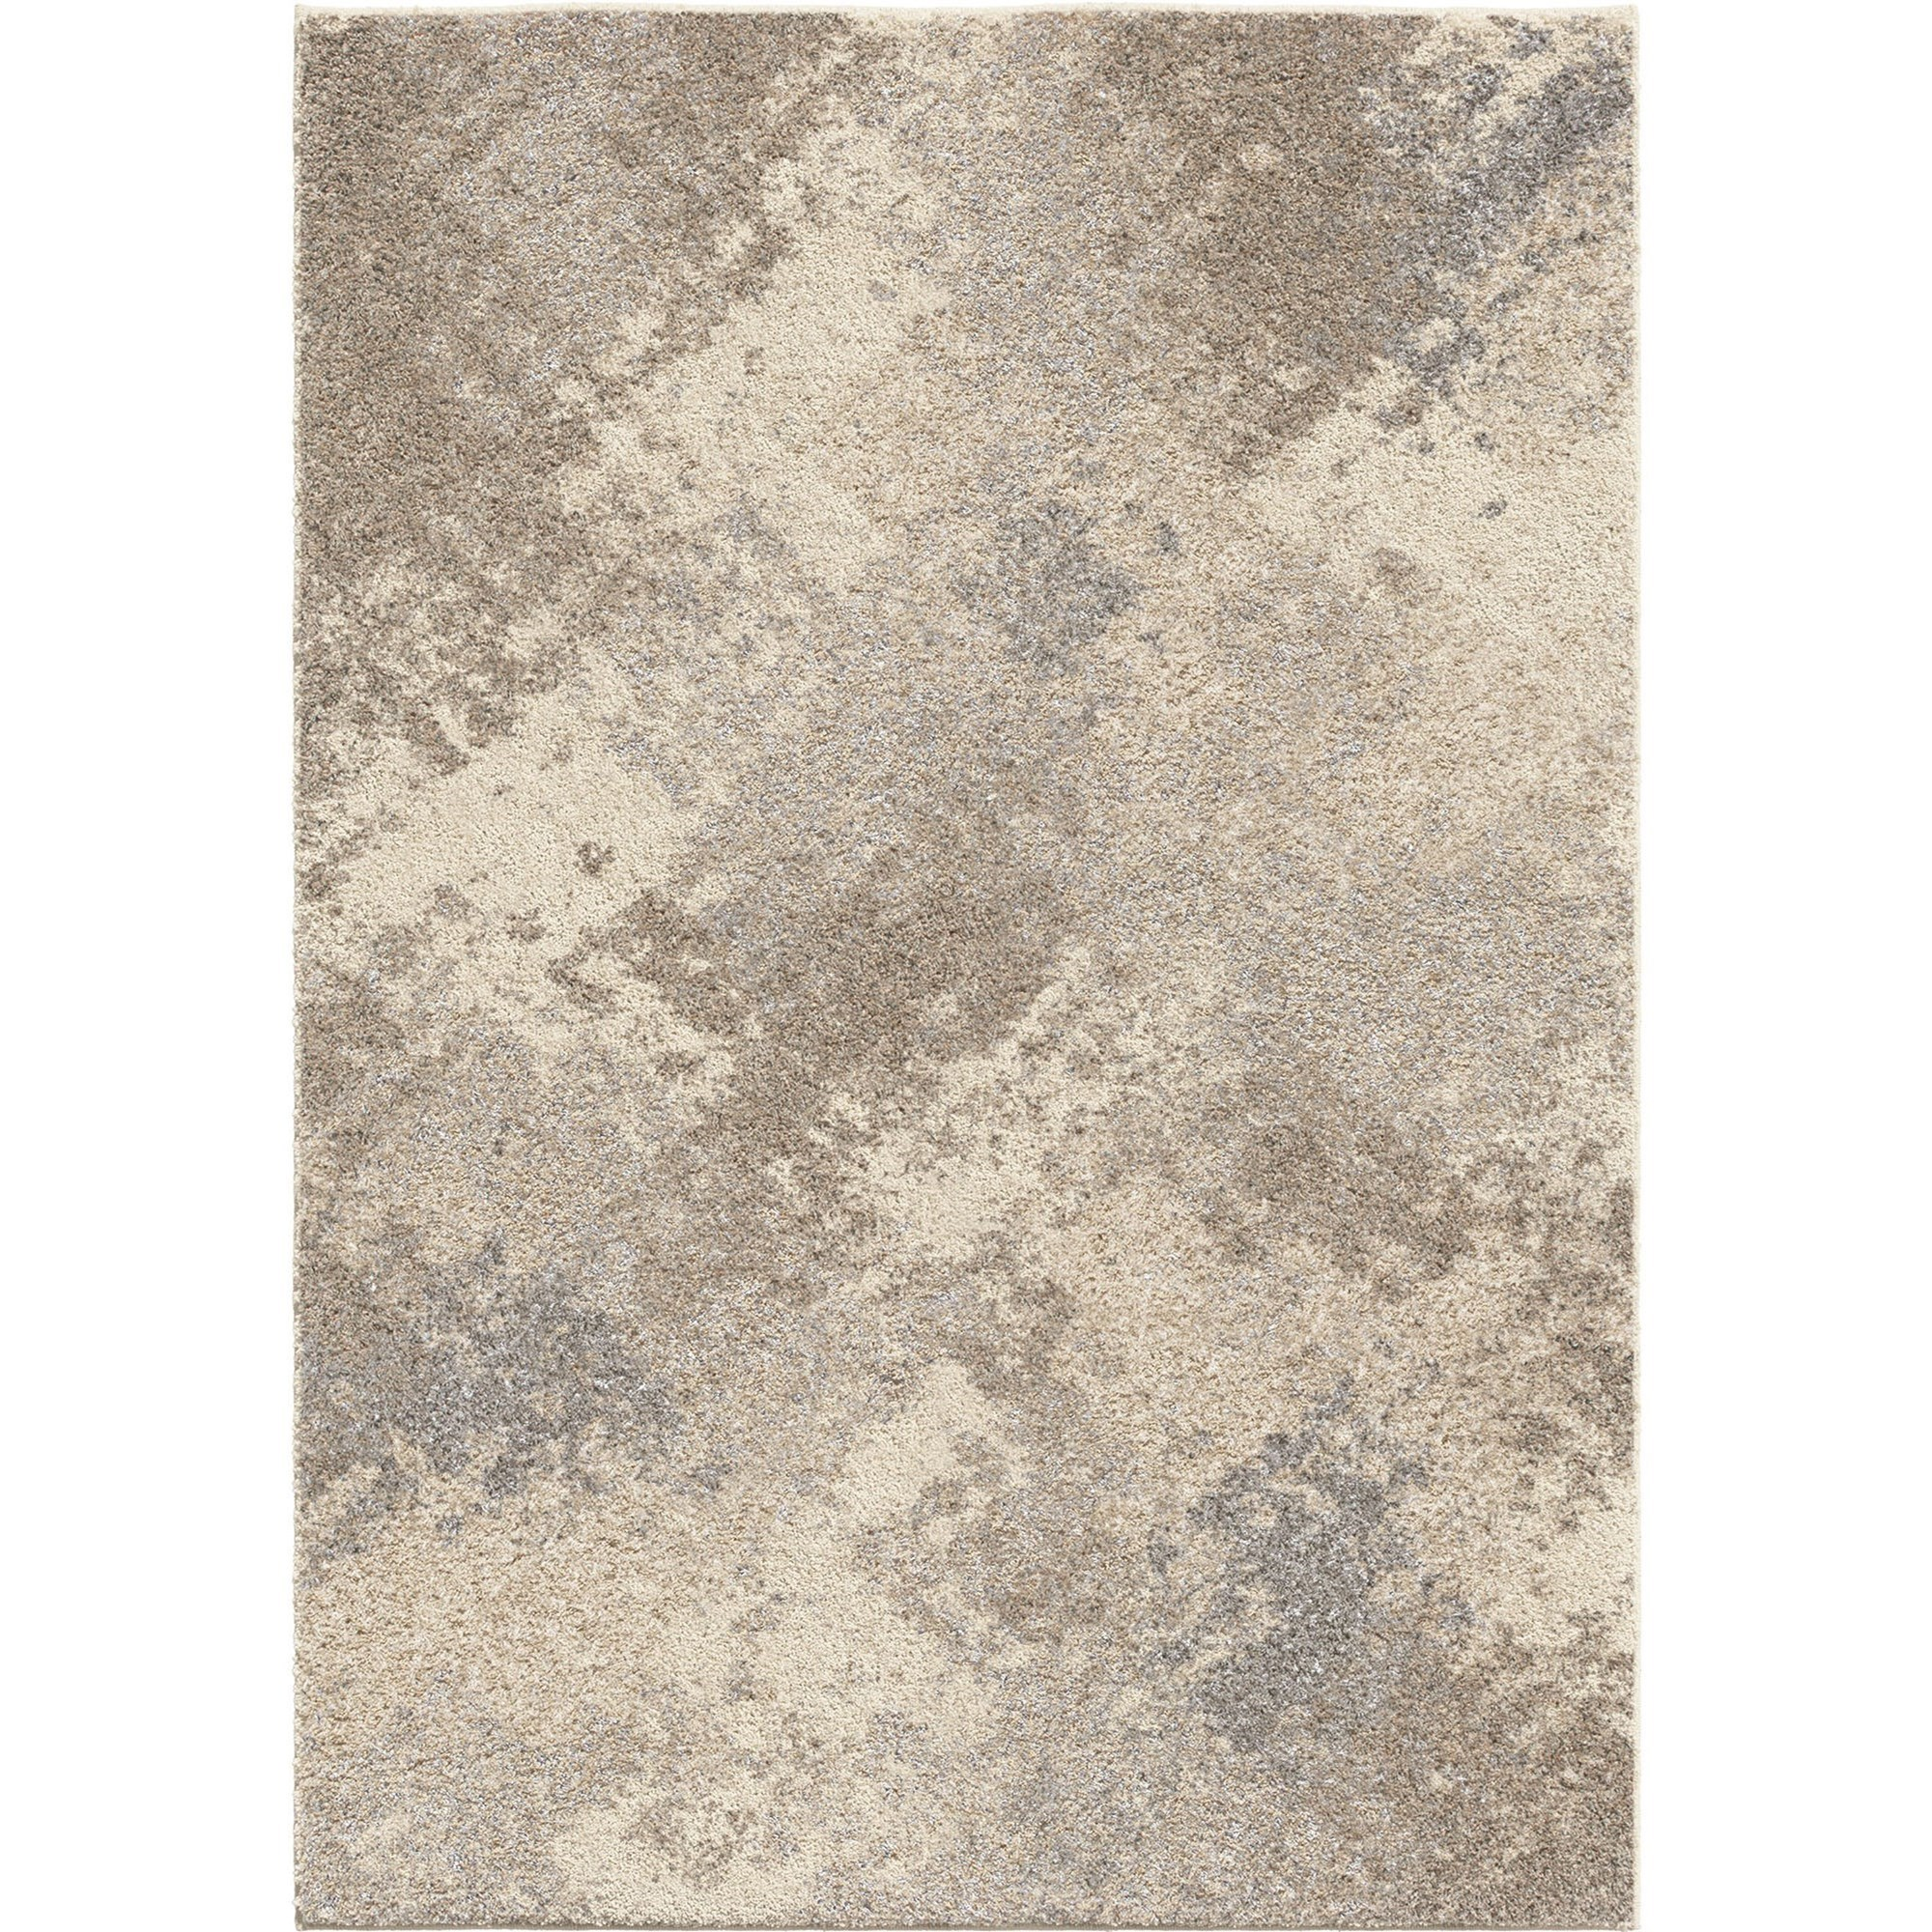 Airhaven Contemporary 8x10 Area Rug in Cream/Grey by Armen Living at Dream Home Interiors